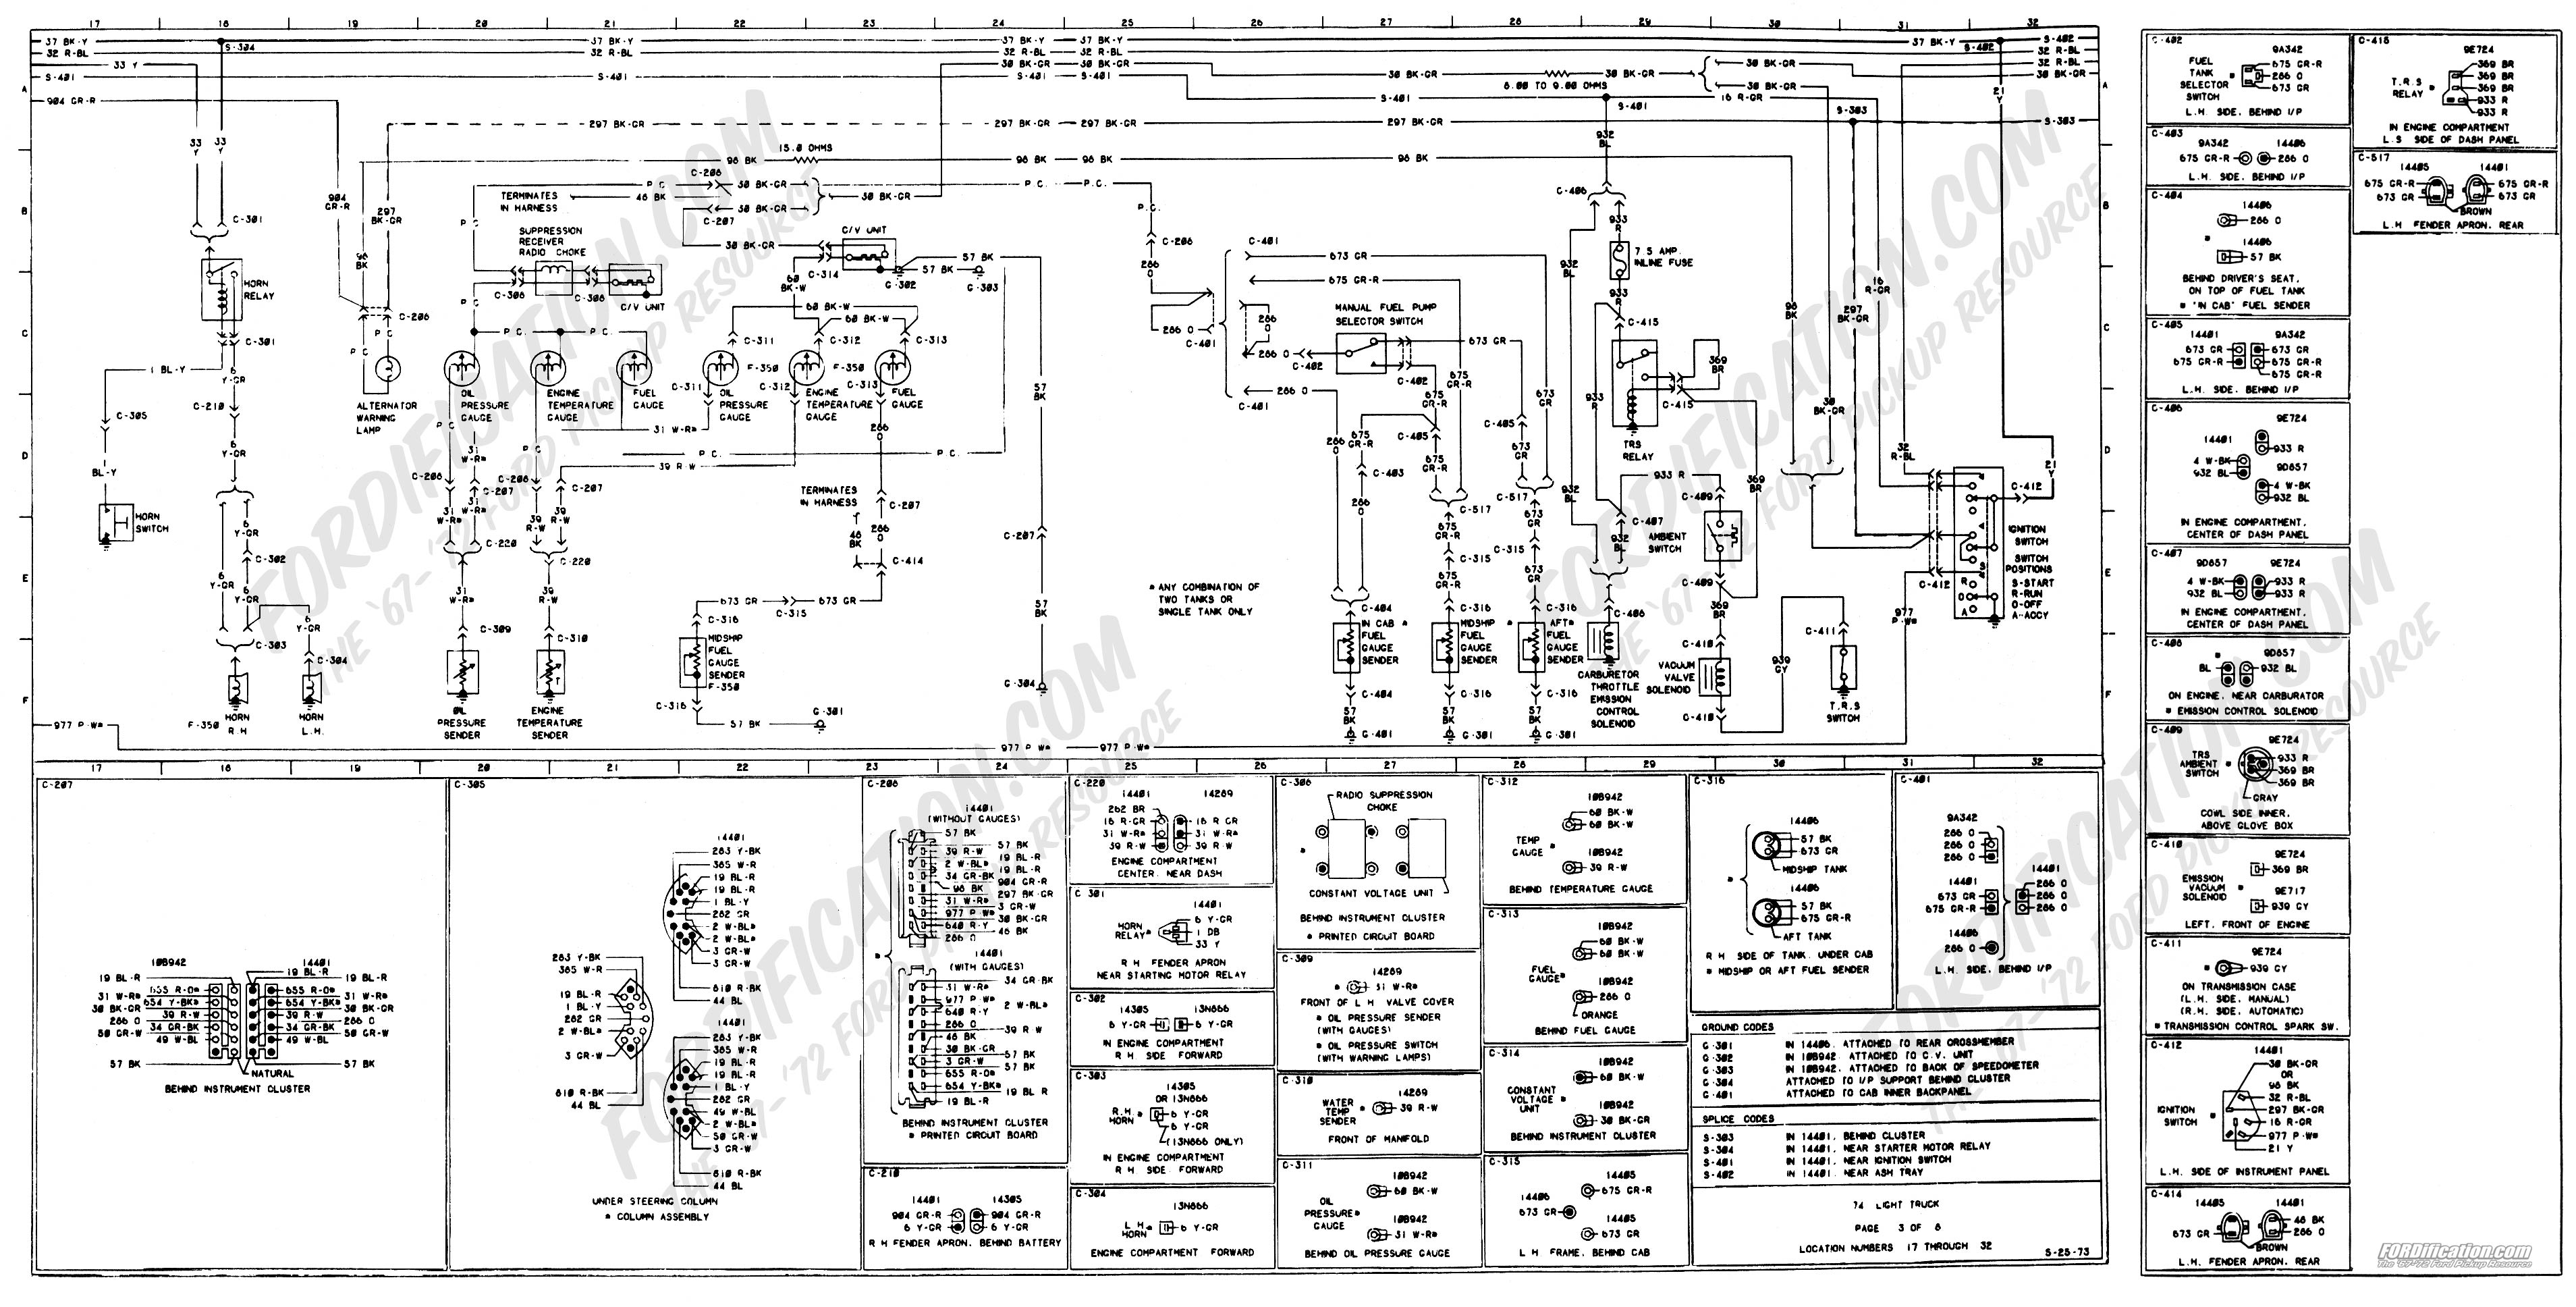 wiring_74master_3of8 1973 1979 ford truck wiring diagrams & schematics fordification net OEM Wiring Harness Connectors at aneh.co